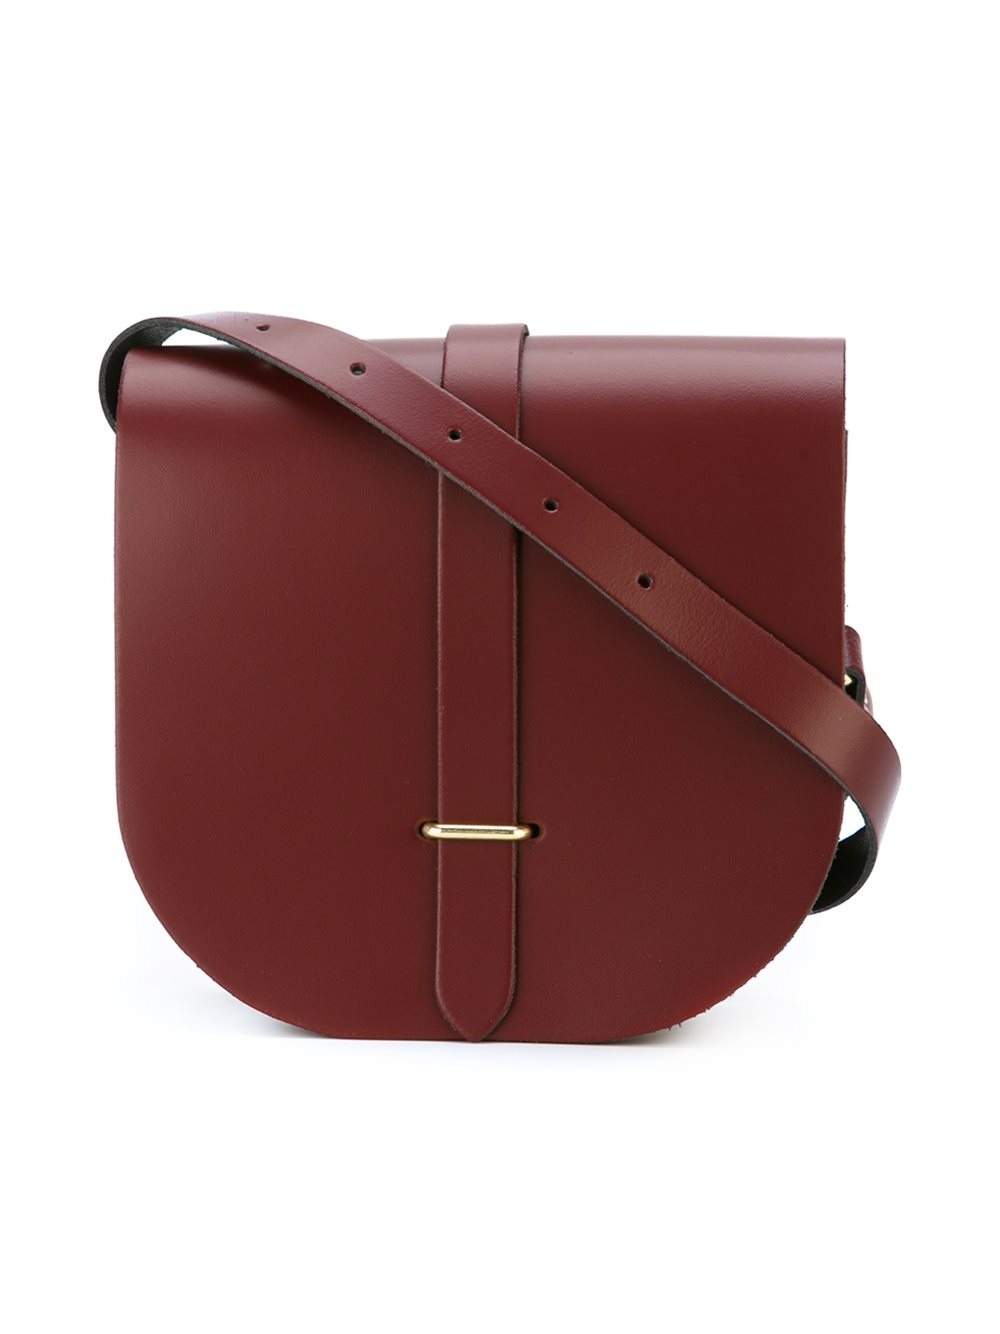 Shop casual and crafted leather bags: crossbody bags, totes, satchels and urgut.ga Sak California inspired signature Indio, Silverlake and Kendra bags are perfect for every day.